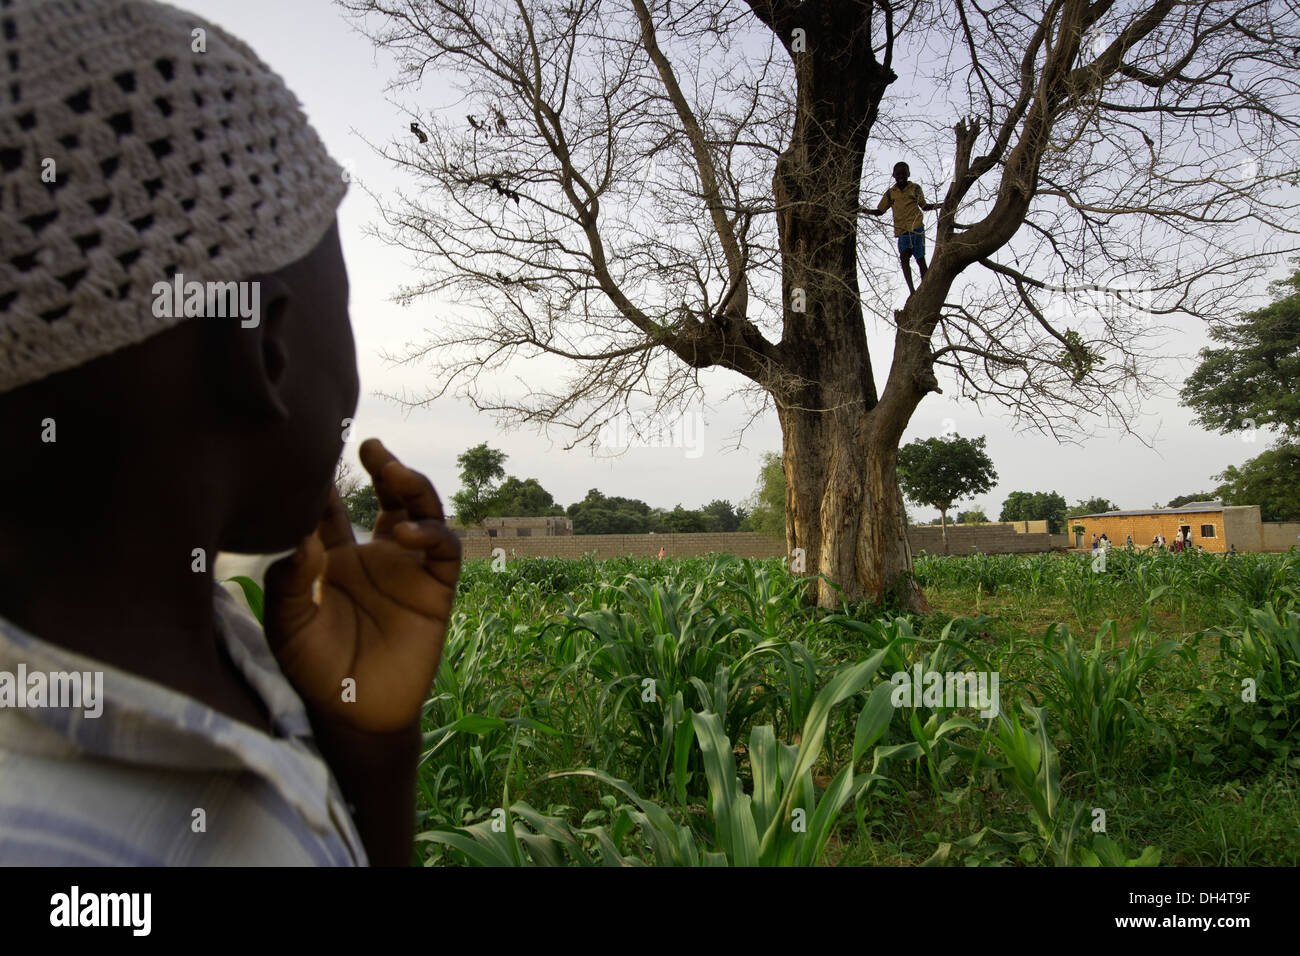 Nitrogen fixing Faidherbia albida tree in village near Kano, Nigeria. - Stock Image